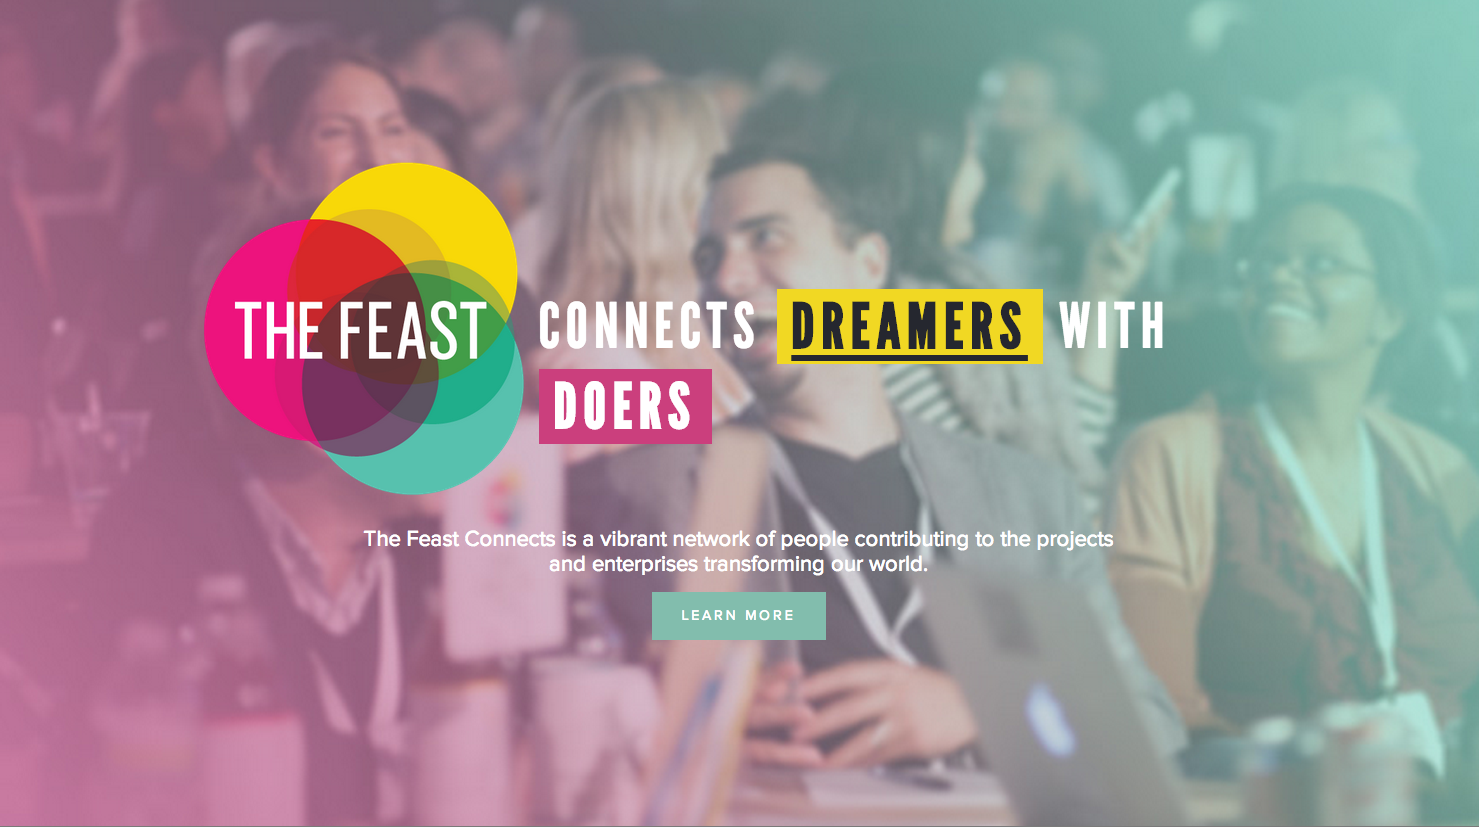 FeastConnects.com